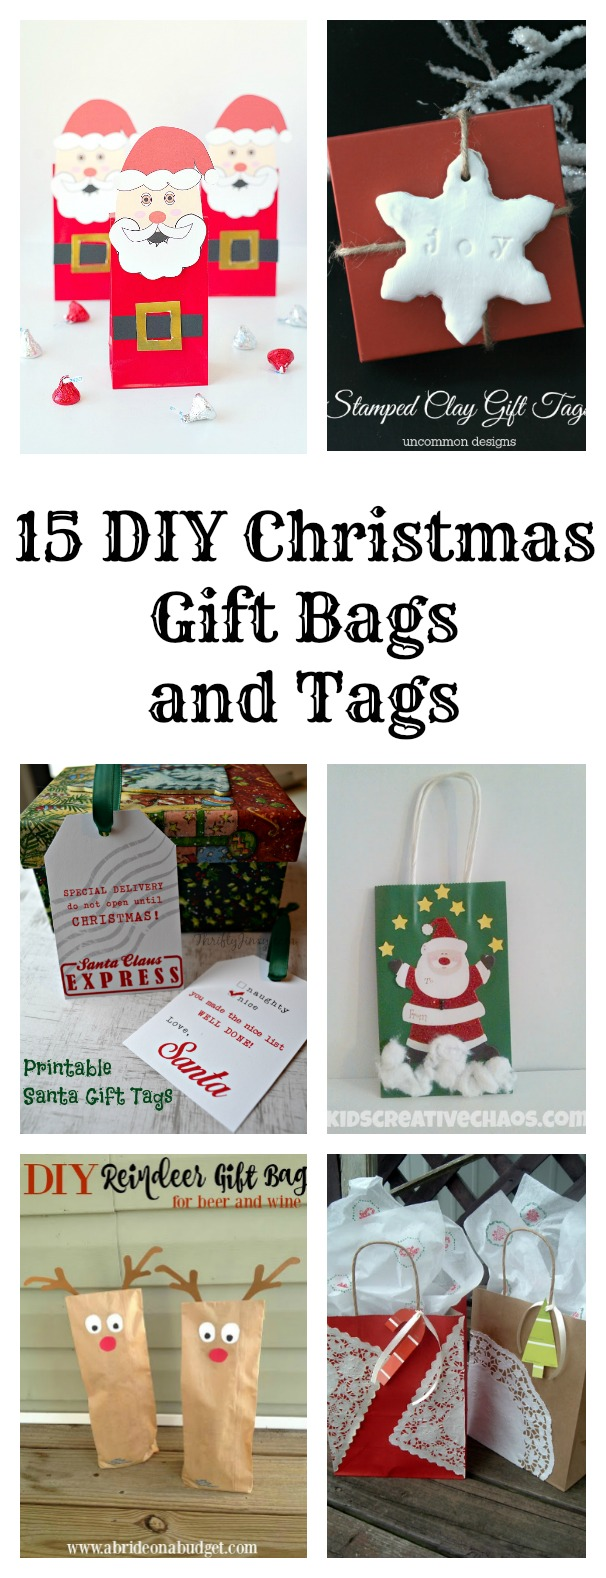 DIY Christmas Gift Bags and Tags